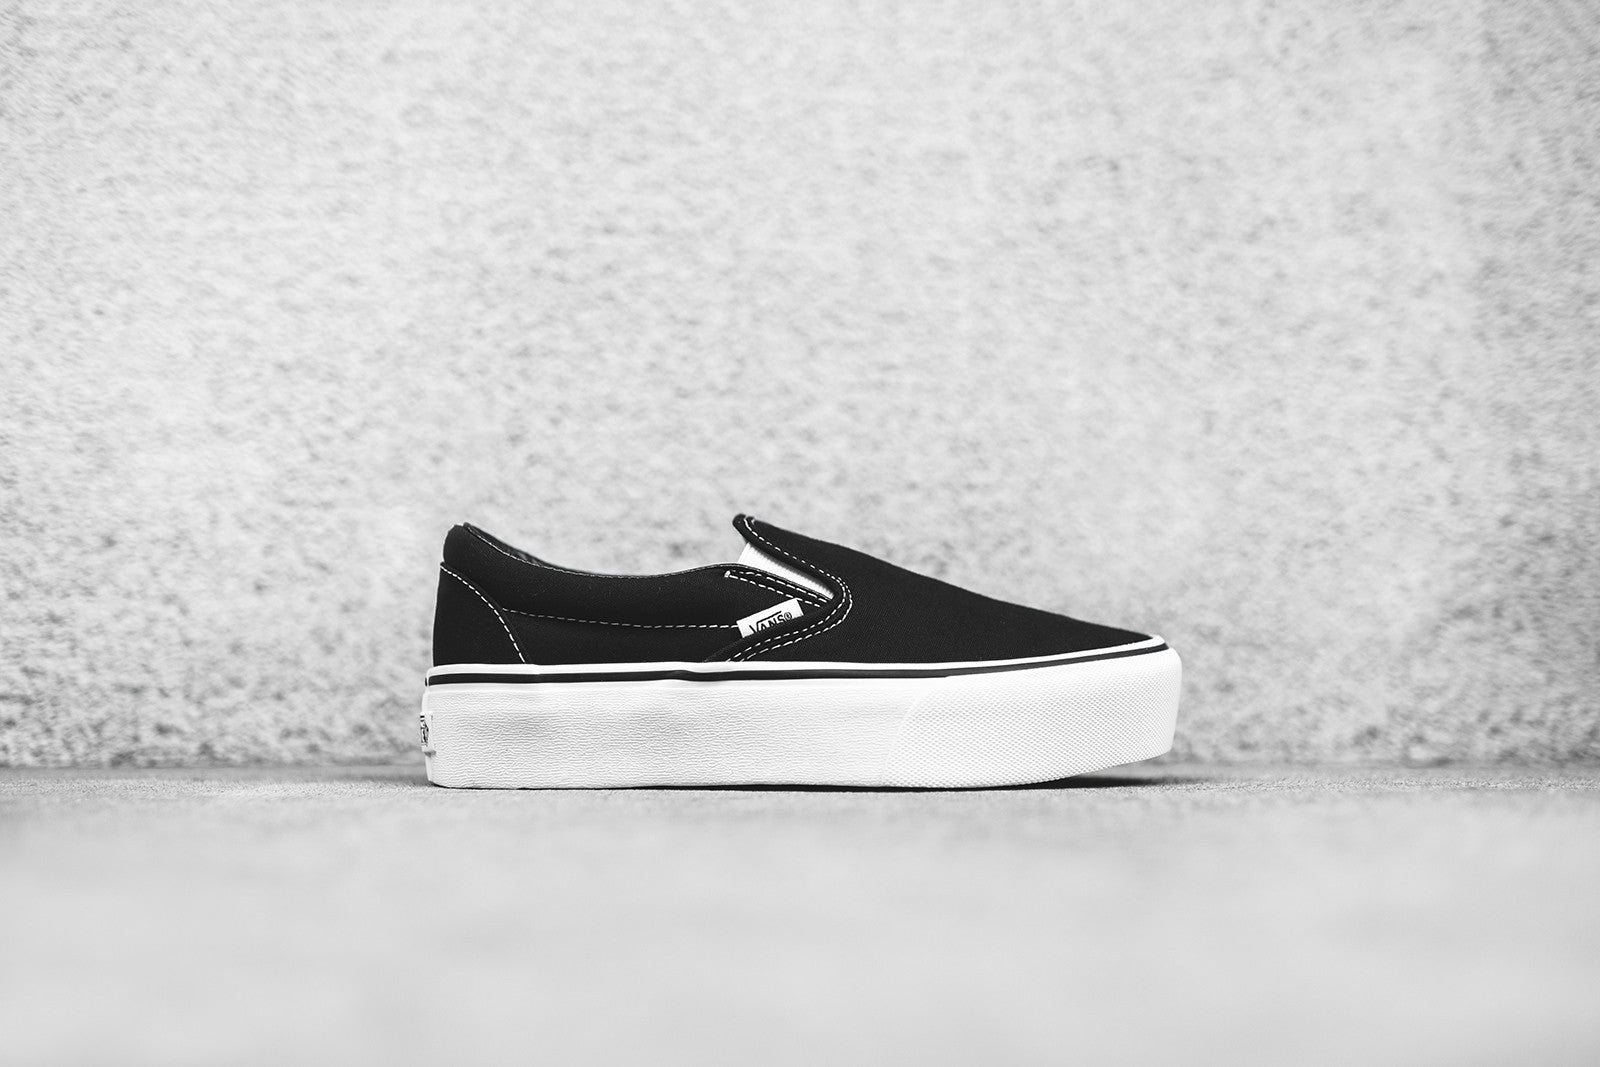 vans platform black and white